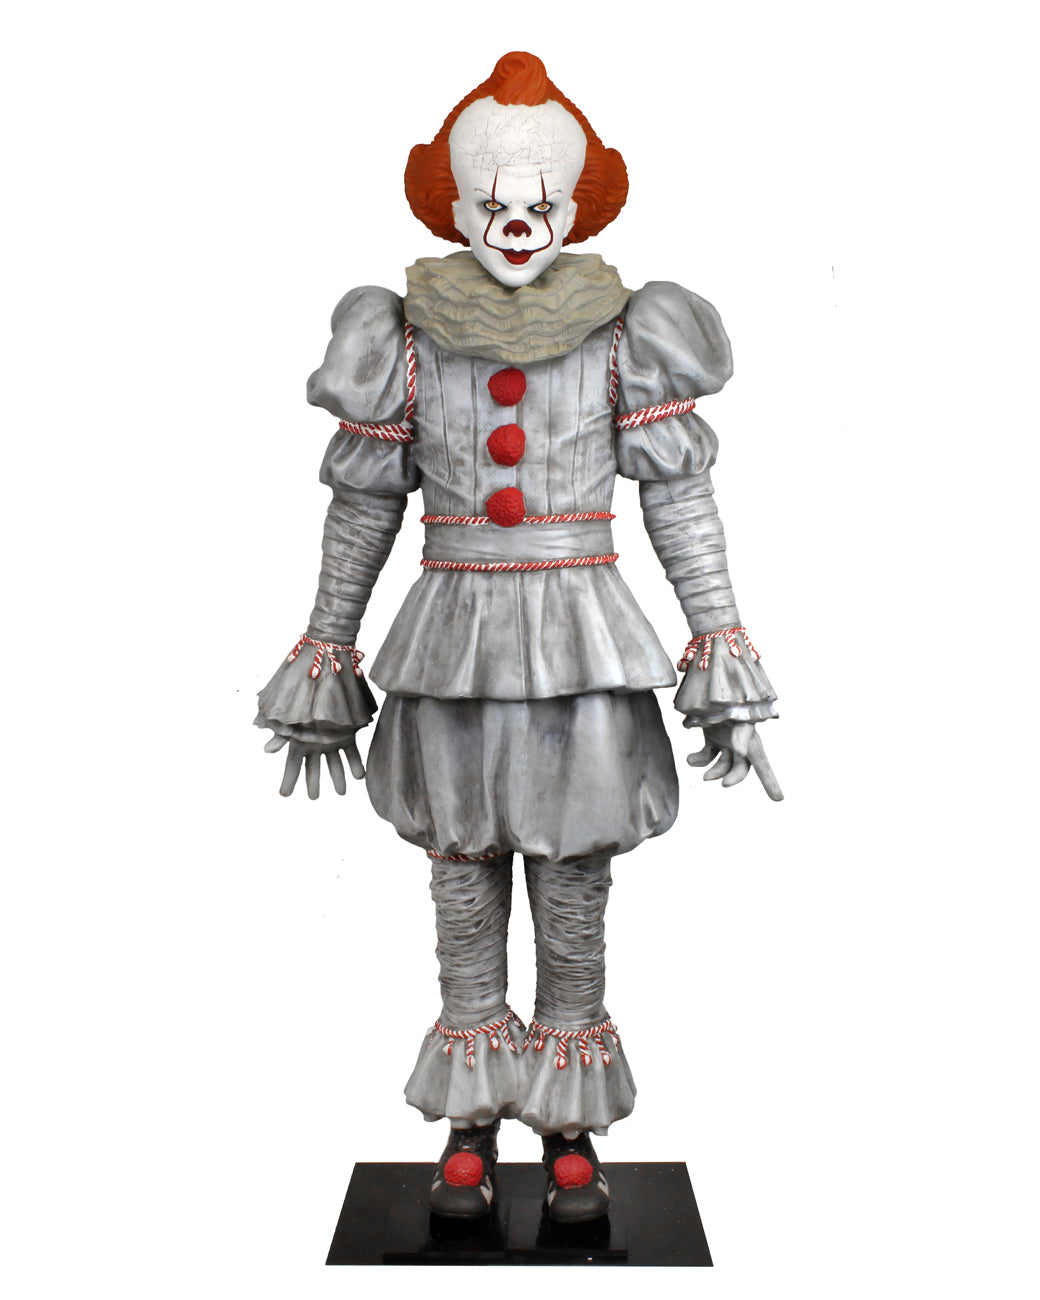 NECA Replica: IT ESO Capitulo 2 - Pennywise Tamaño Real